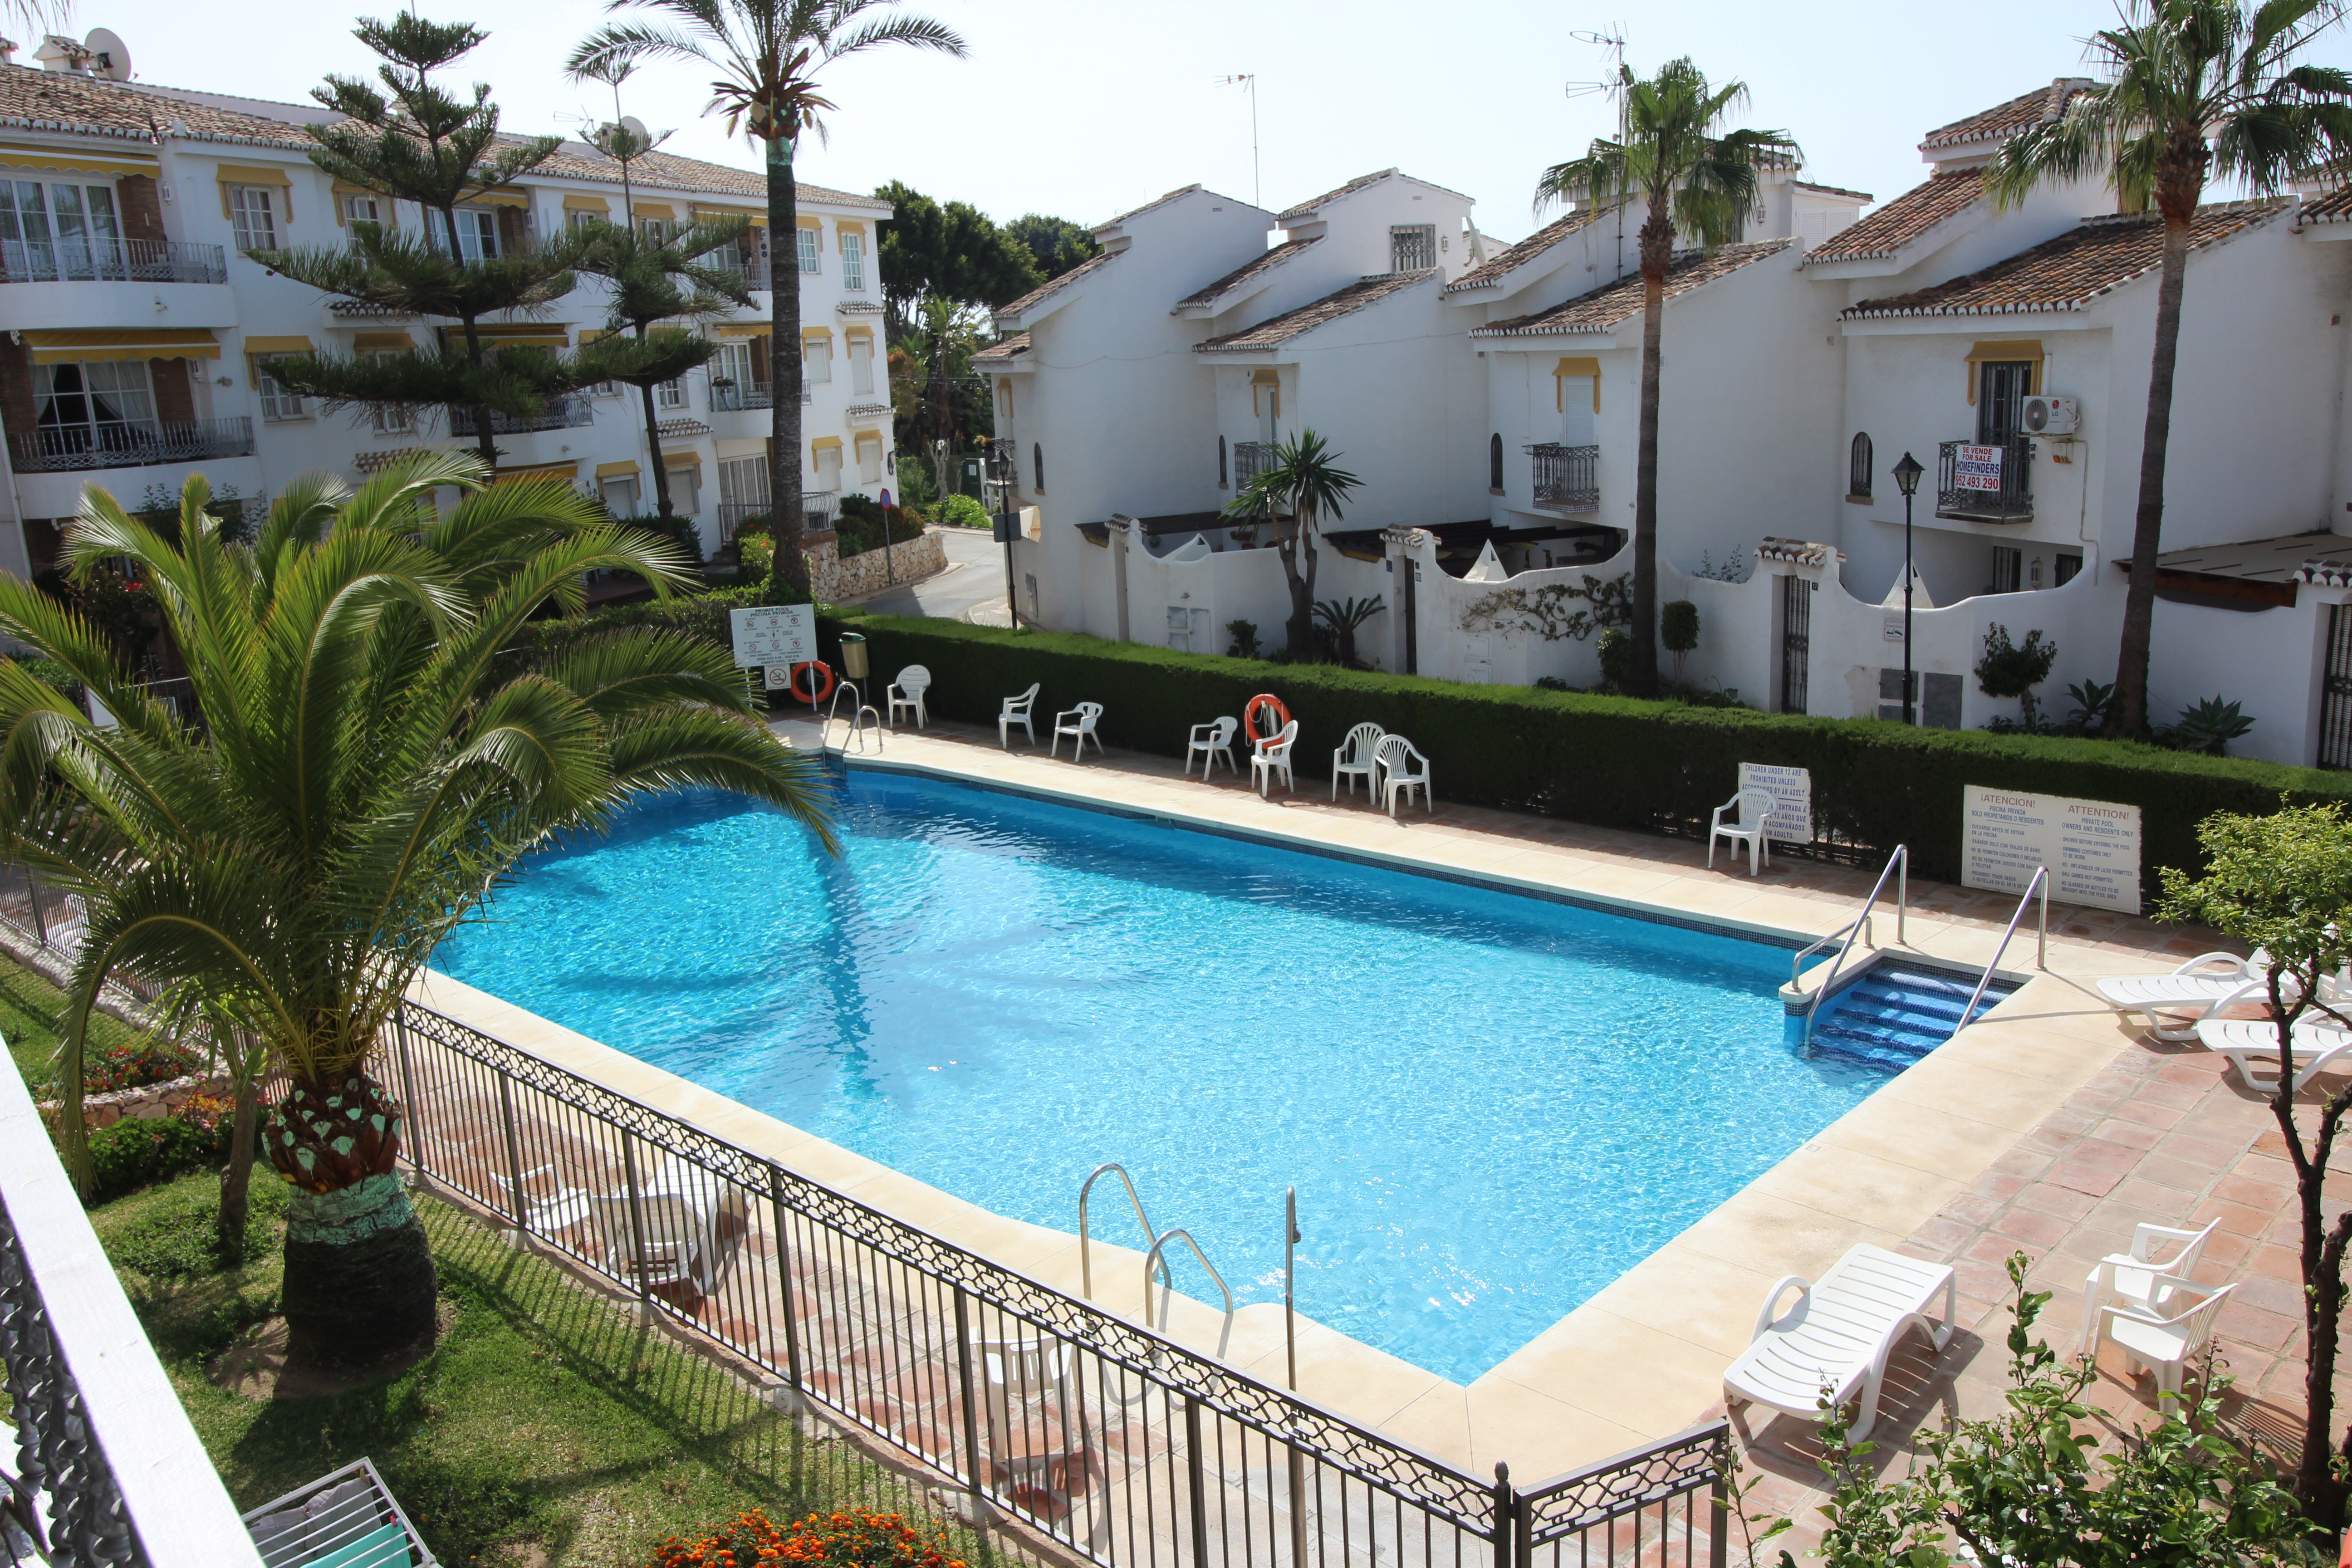 MP 2-3 Mijas Playa Club Apartment